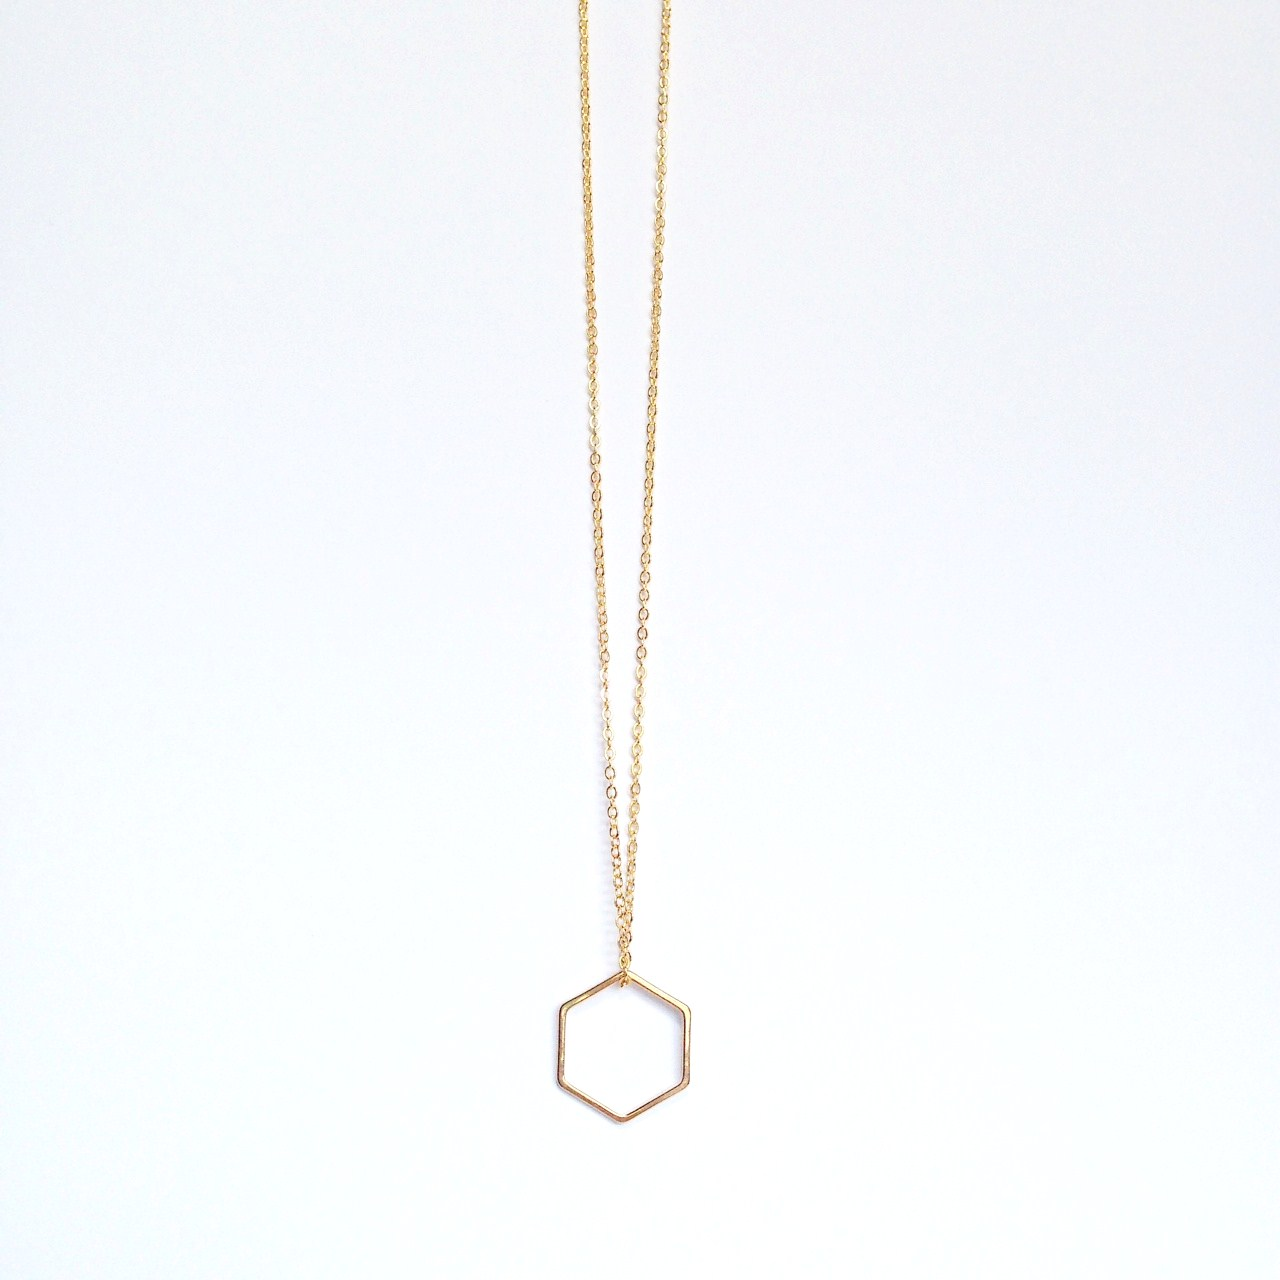 Hexagon Necklace Minimalist Necklace Simple by BBs Jewelry on